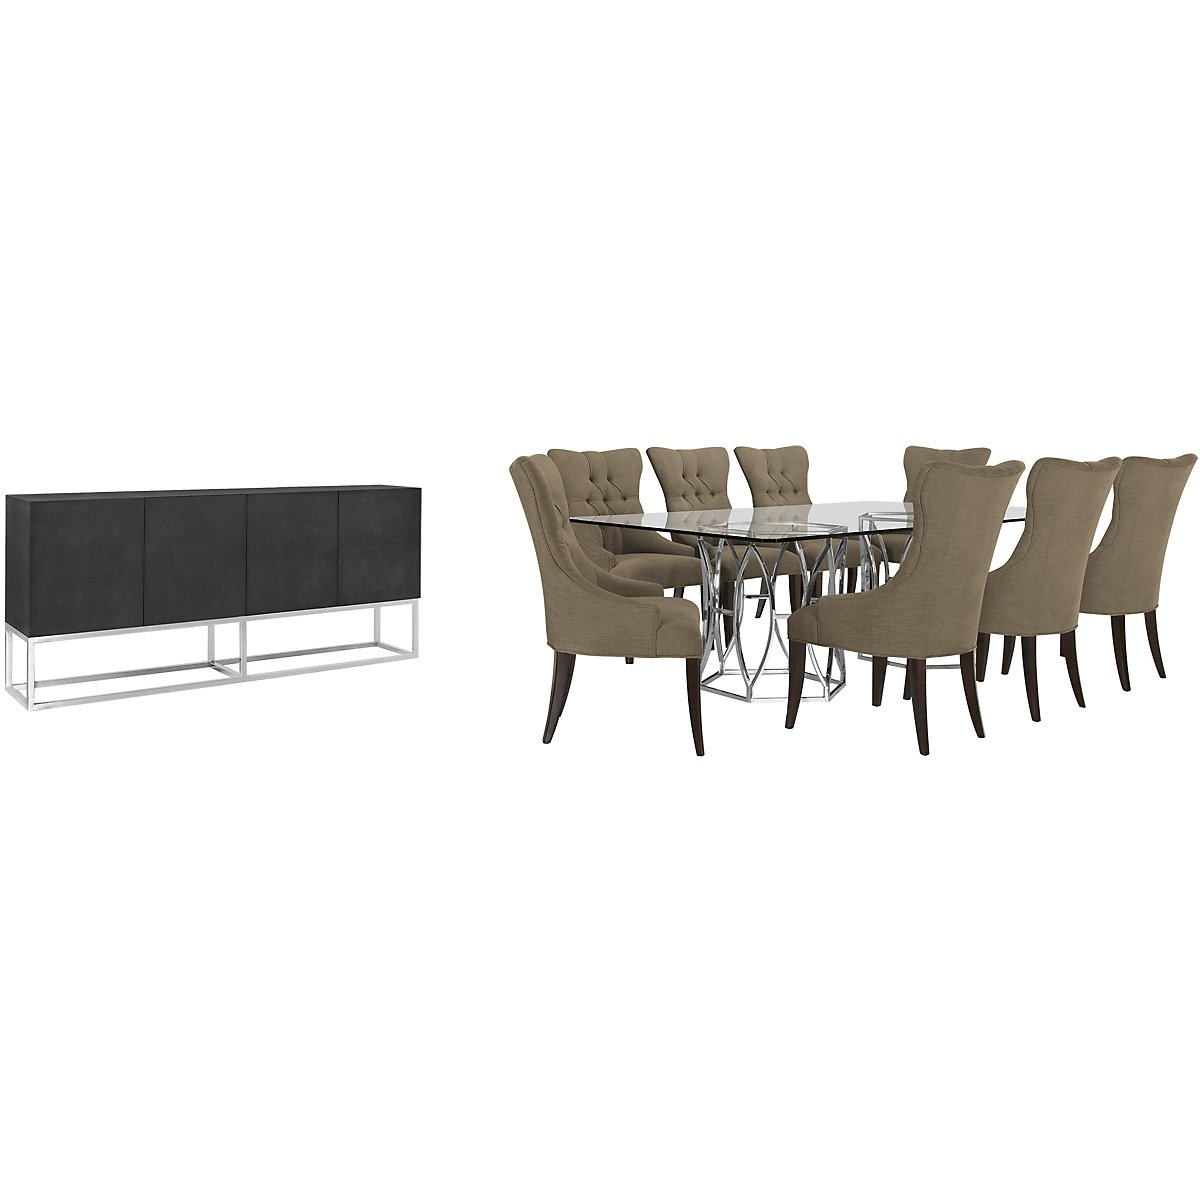 Argent Khaki Glass Rect Dining Room